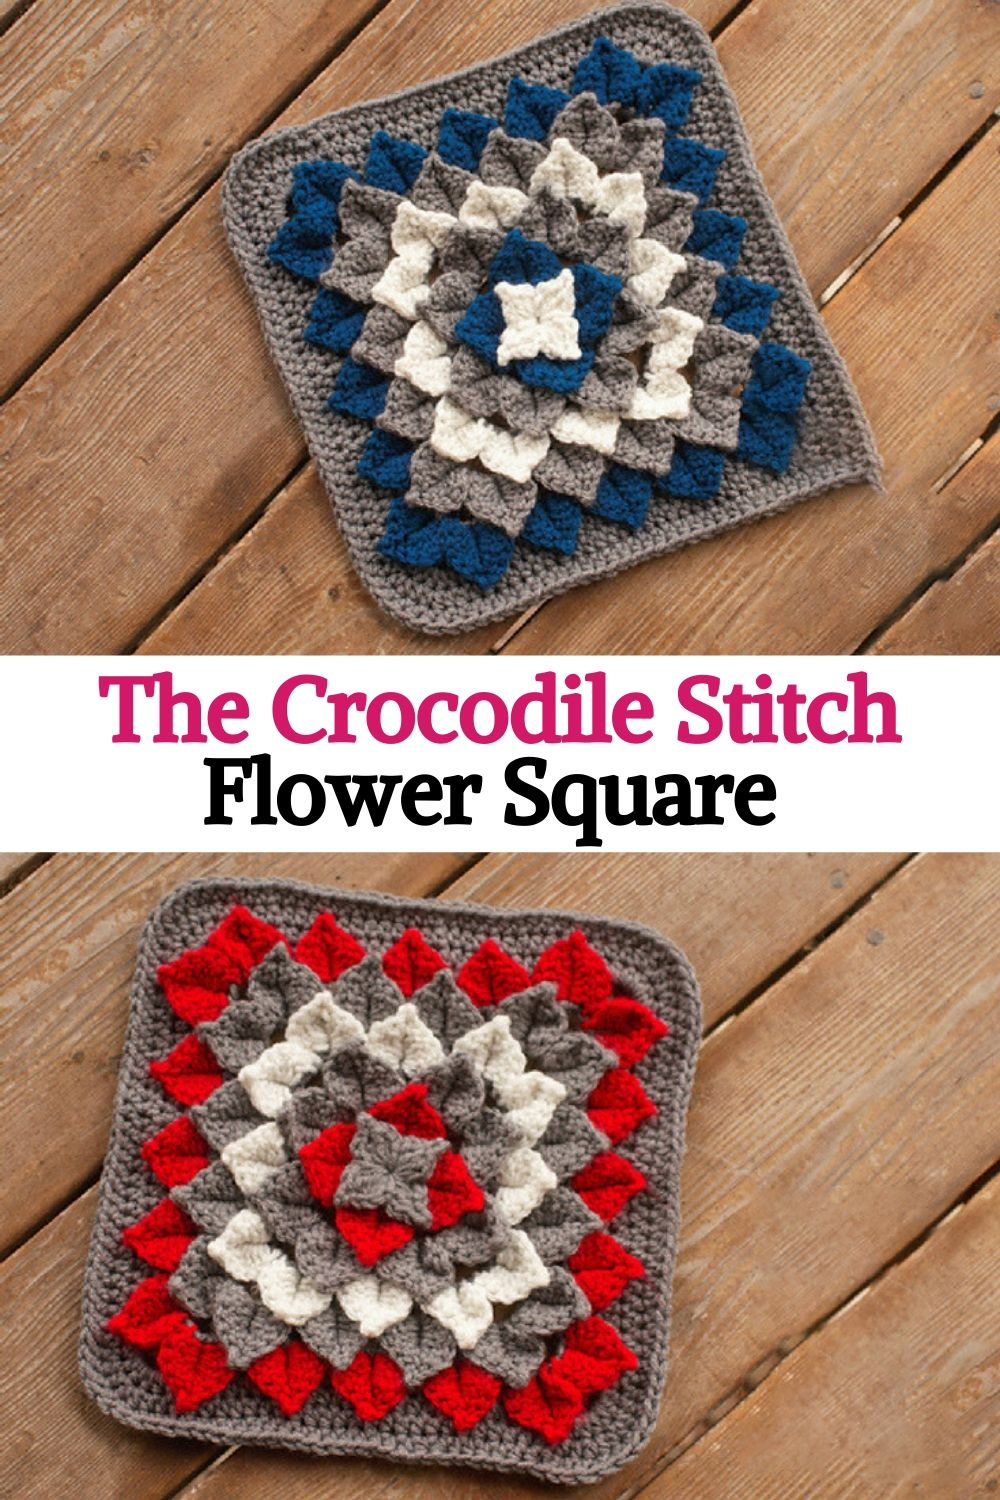 The Crocodile Stitch Flower Square